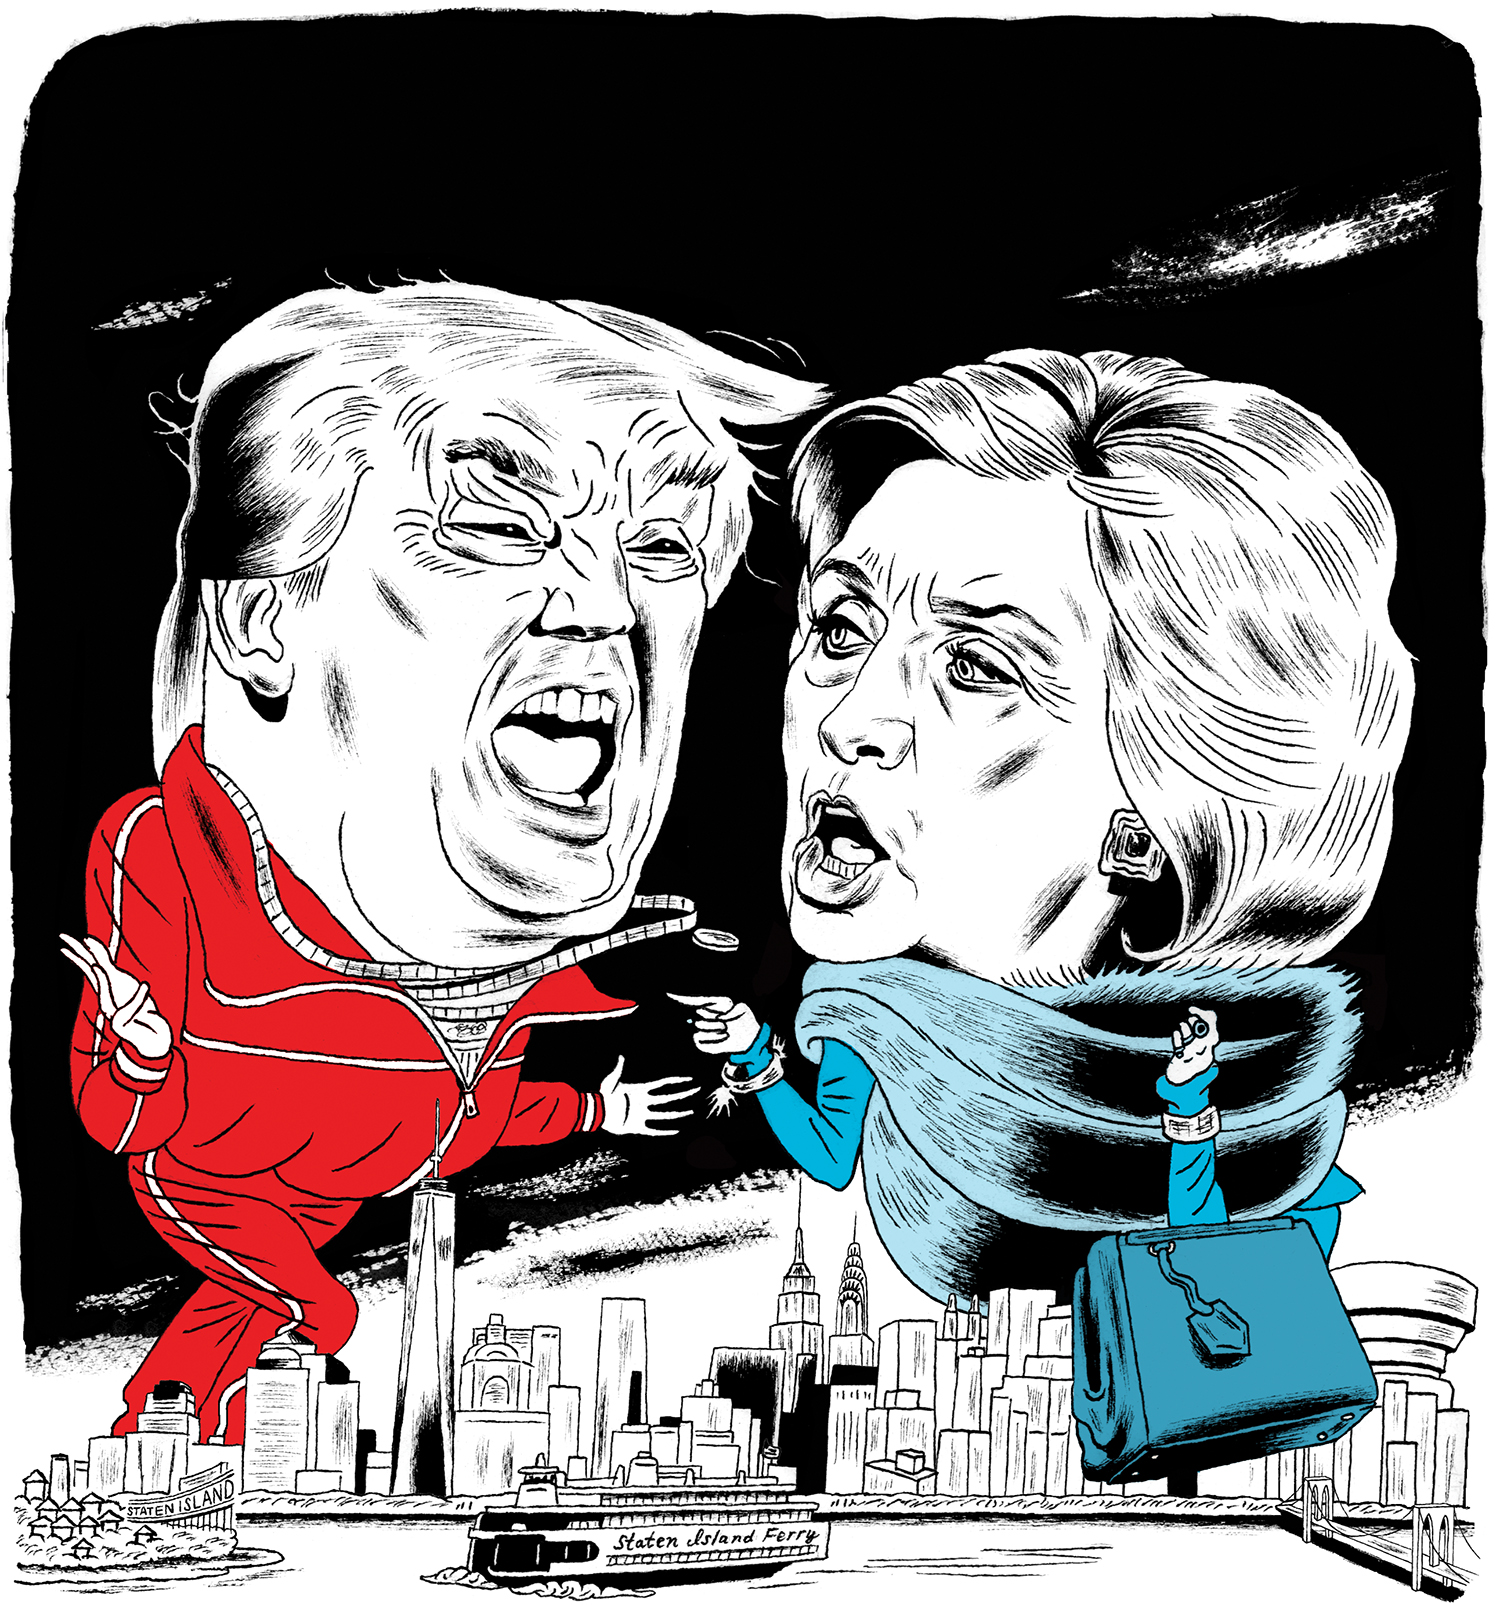 Donald Trump and Hillary Clinton face off, New Yorker vs. New Yorker, for the presidency.